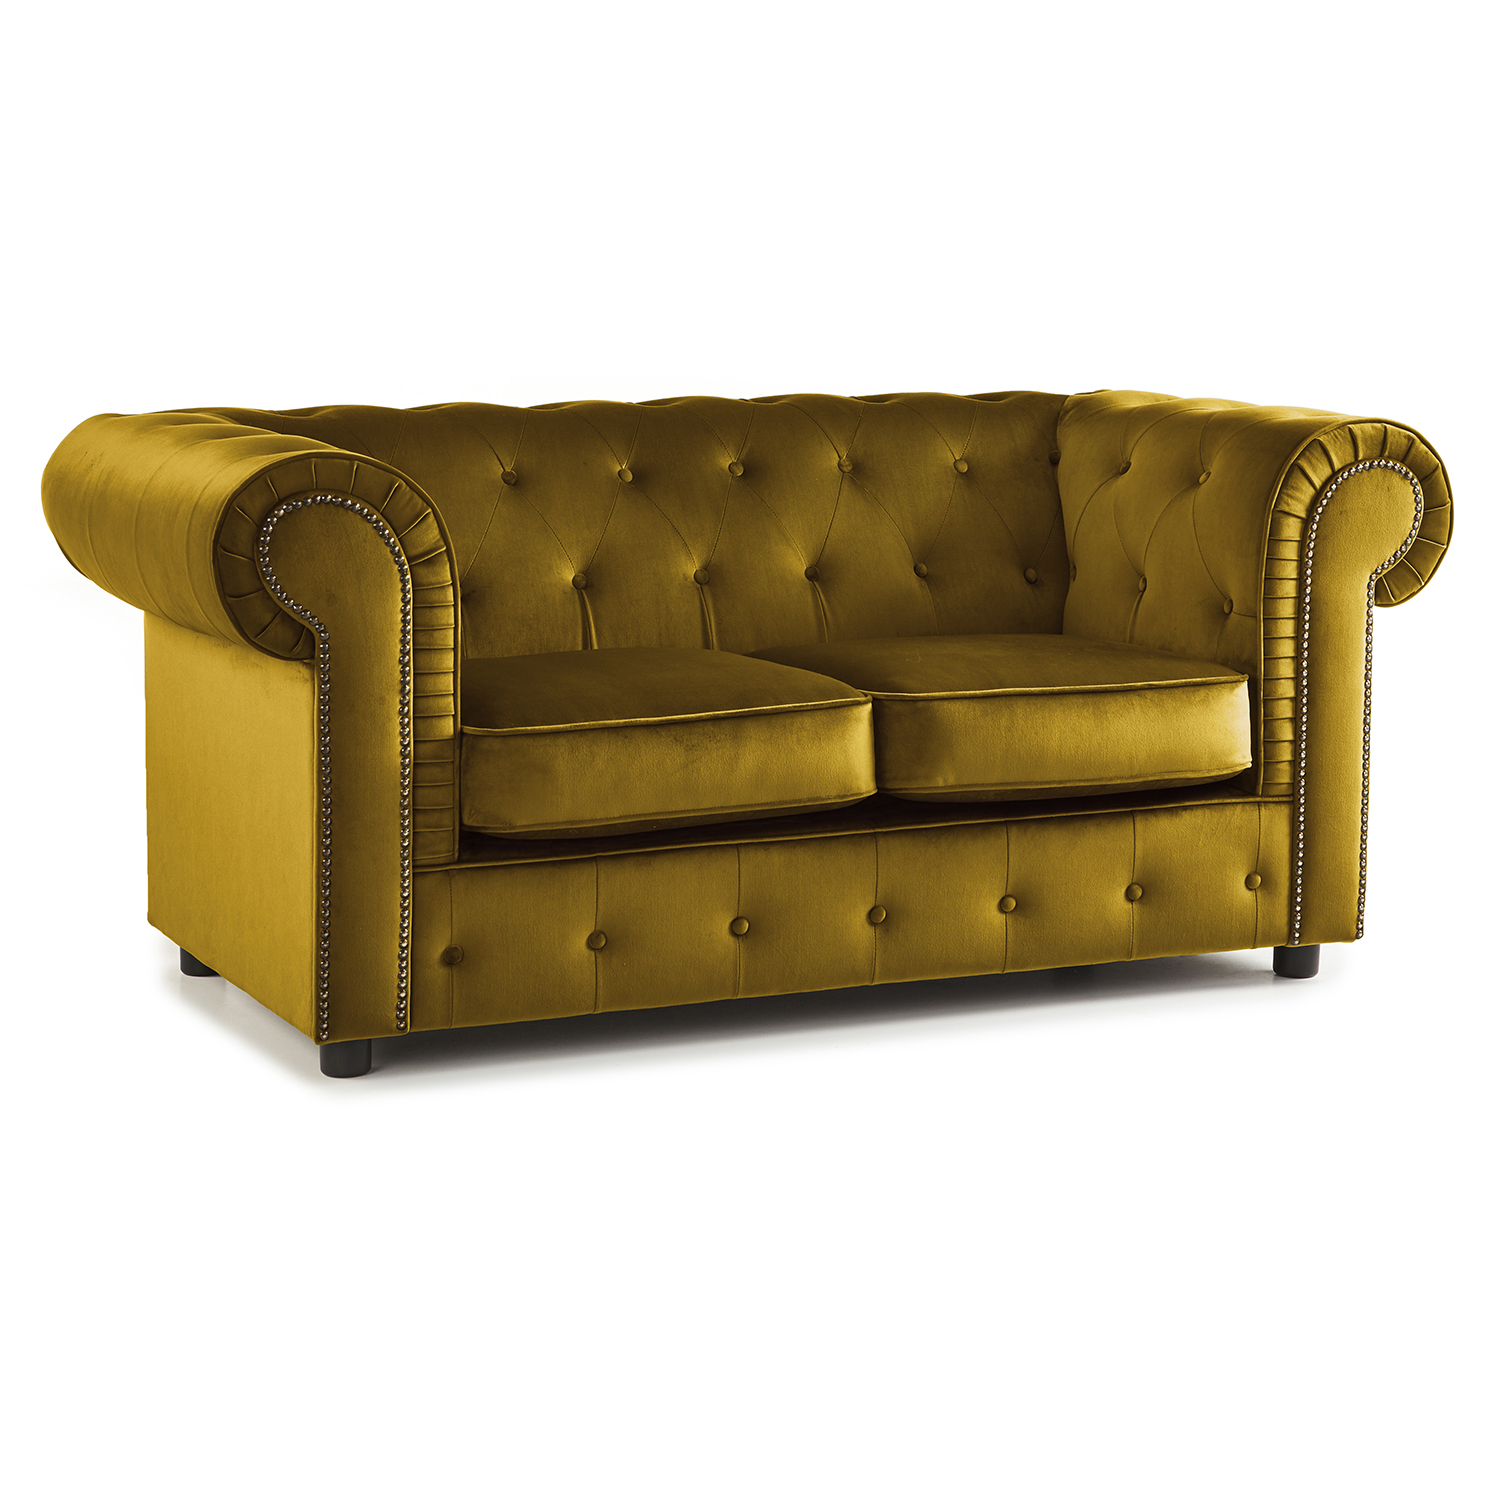 The Ashcroft Soft Velvet Chesterfield 2 Seater Sofa - Mustard